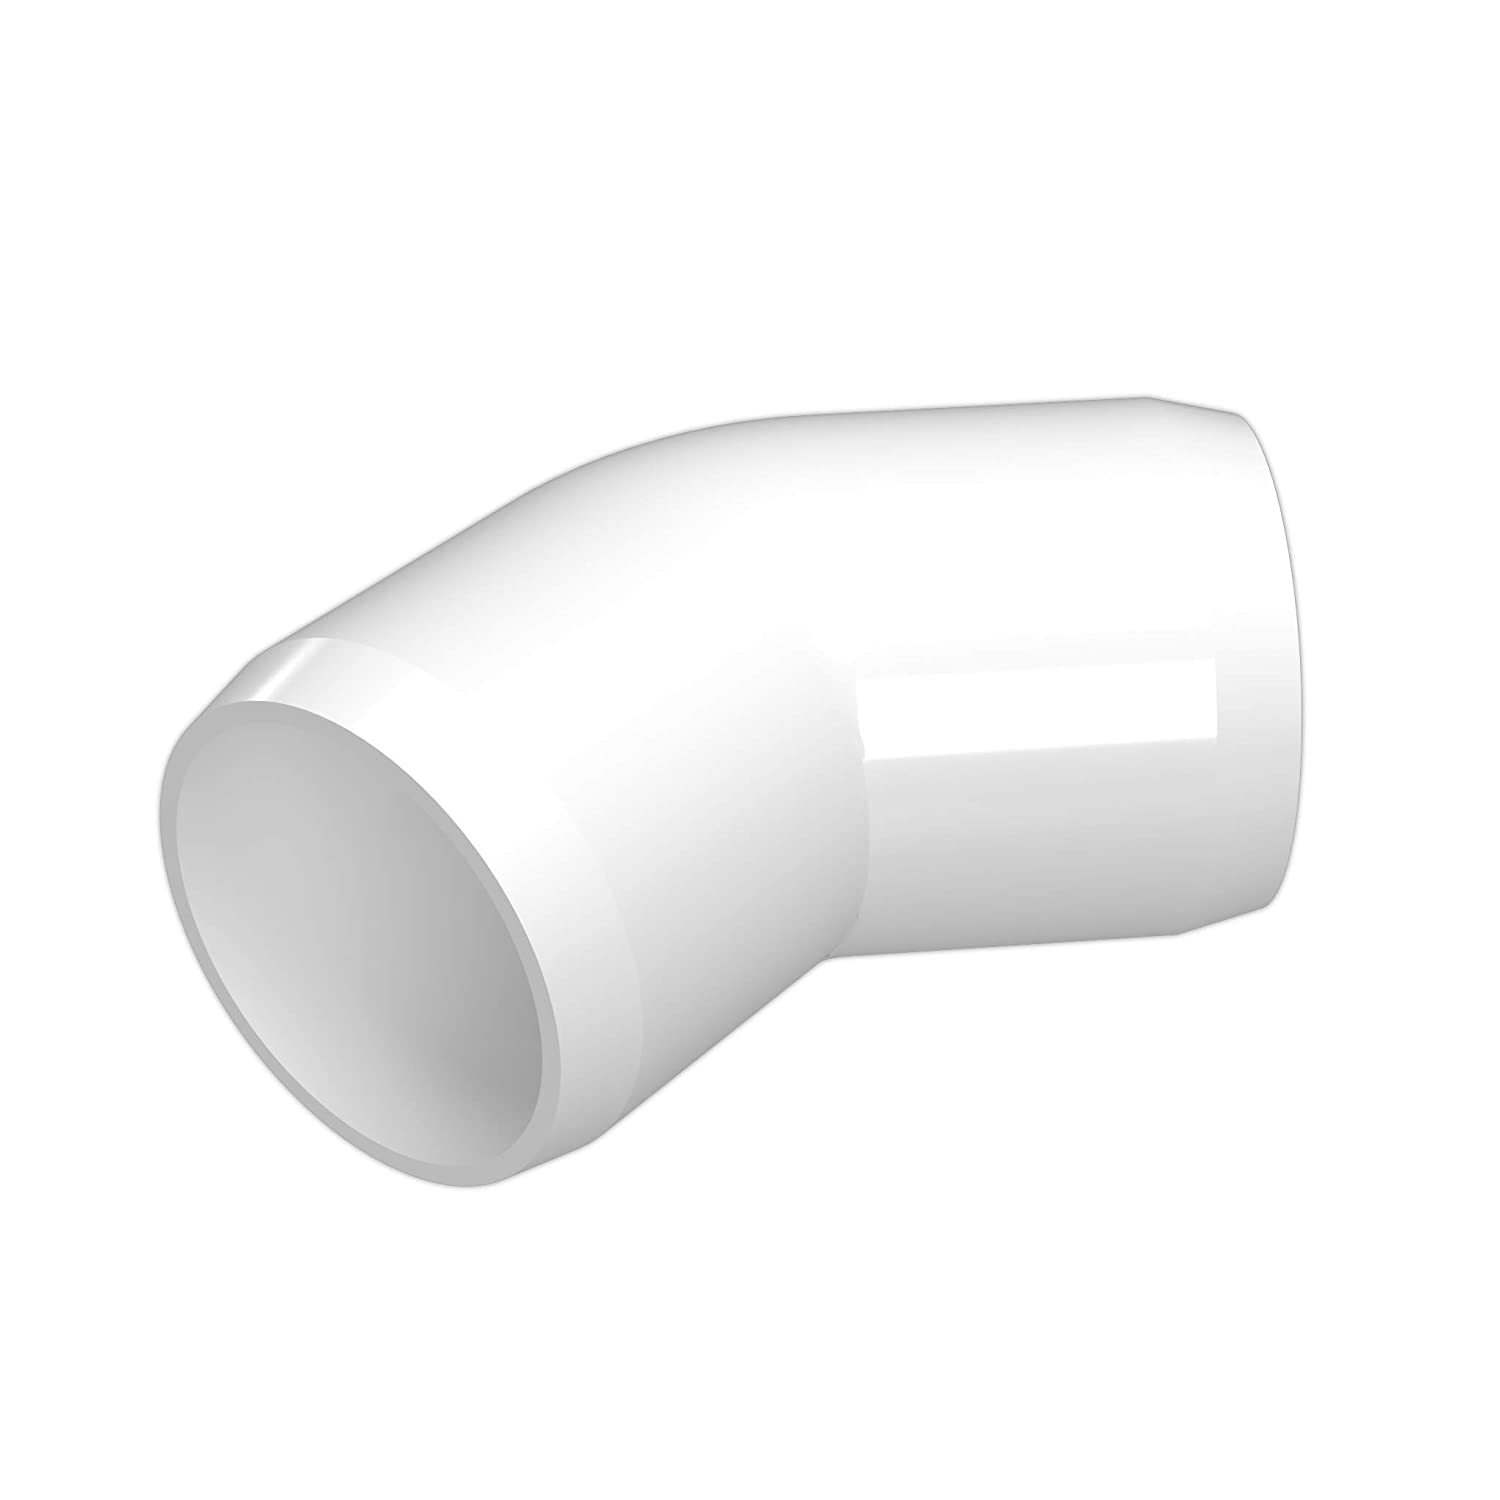 FORMUFIT F00145E-WH-4 45 degree Elbow PVC Fitting, Furniture Grade, 1' Size, White (Pack of 4) 1 Size